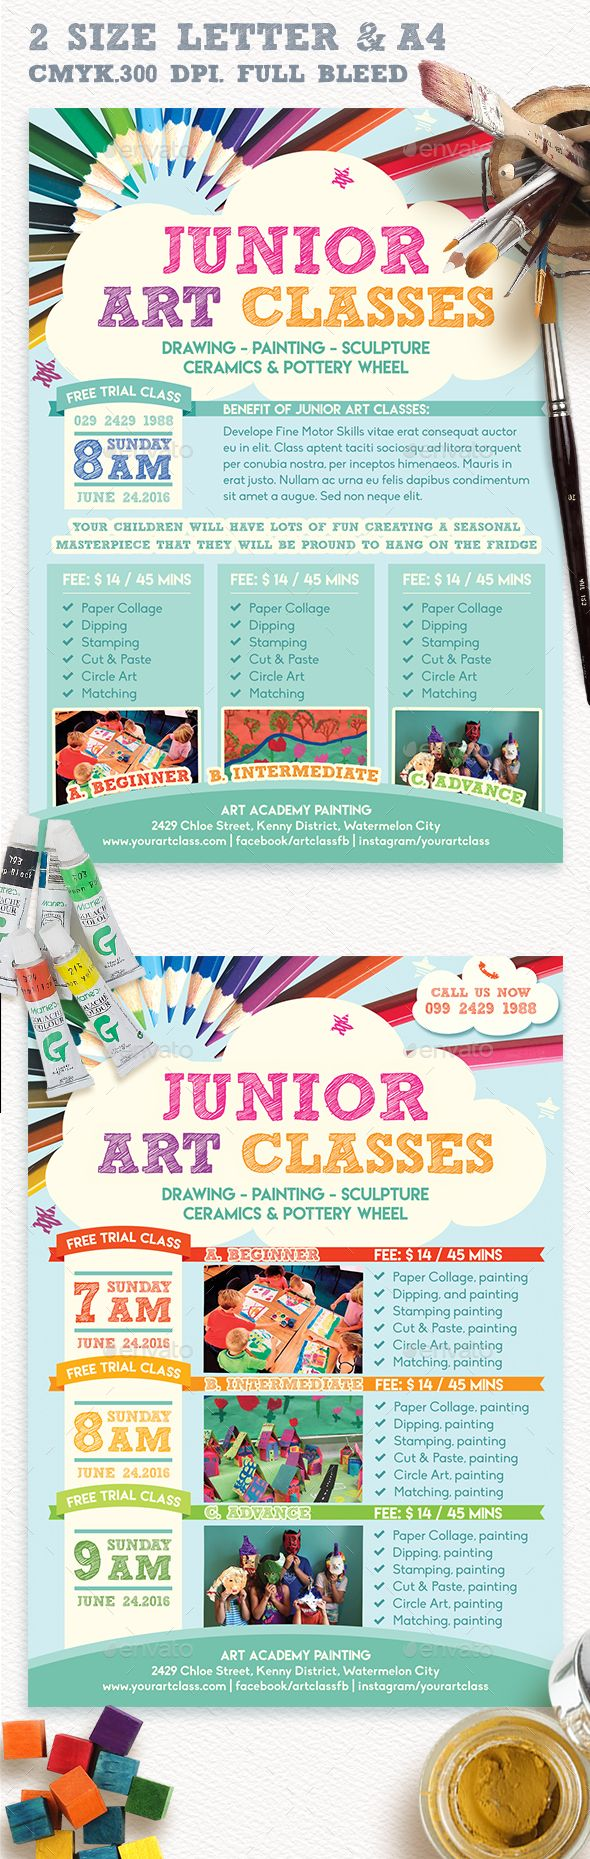 Junior Art Free Trial Class Flyer Template  Jr Art Flyer